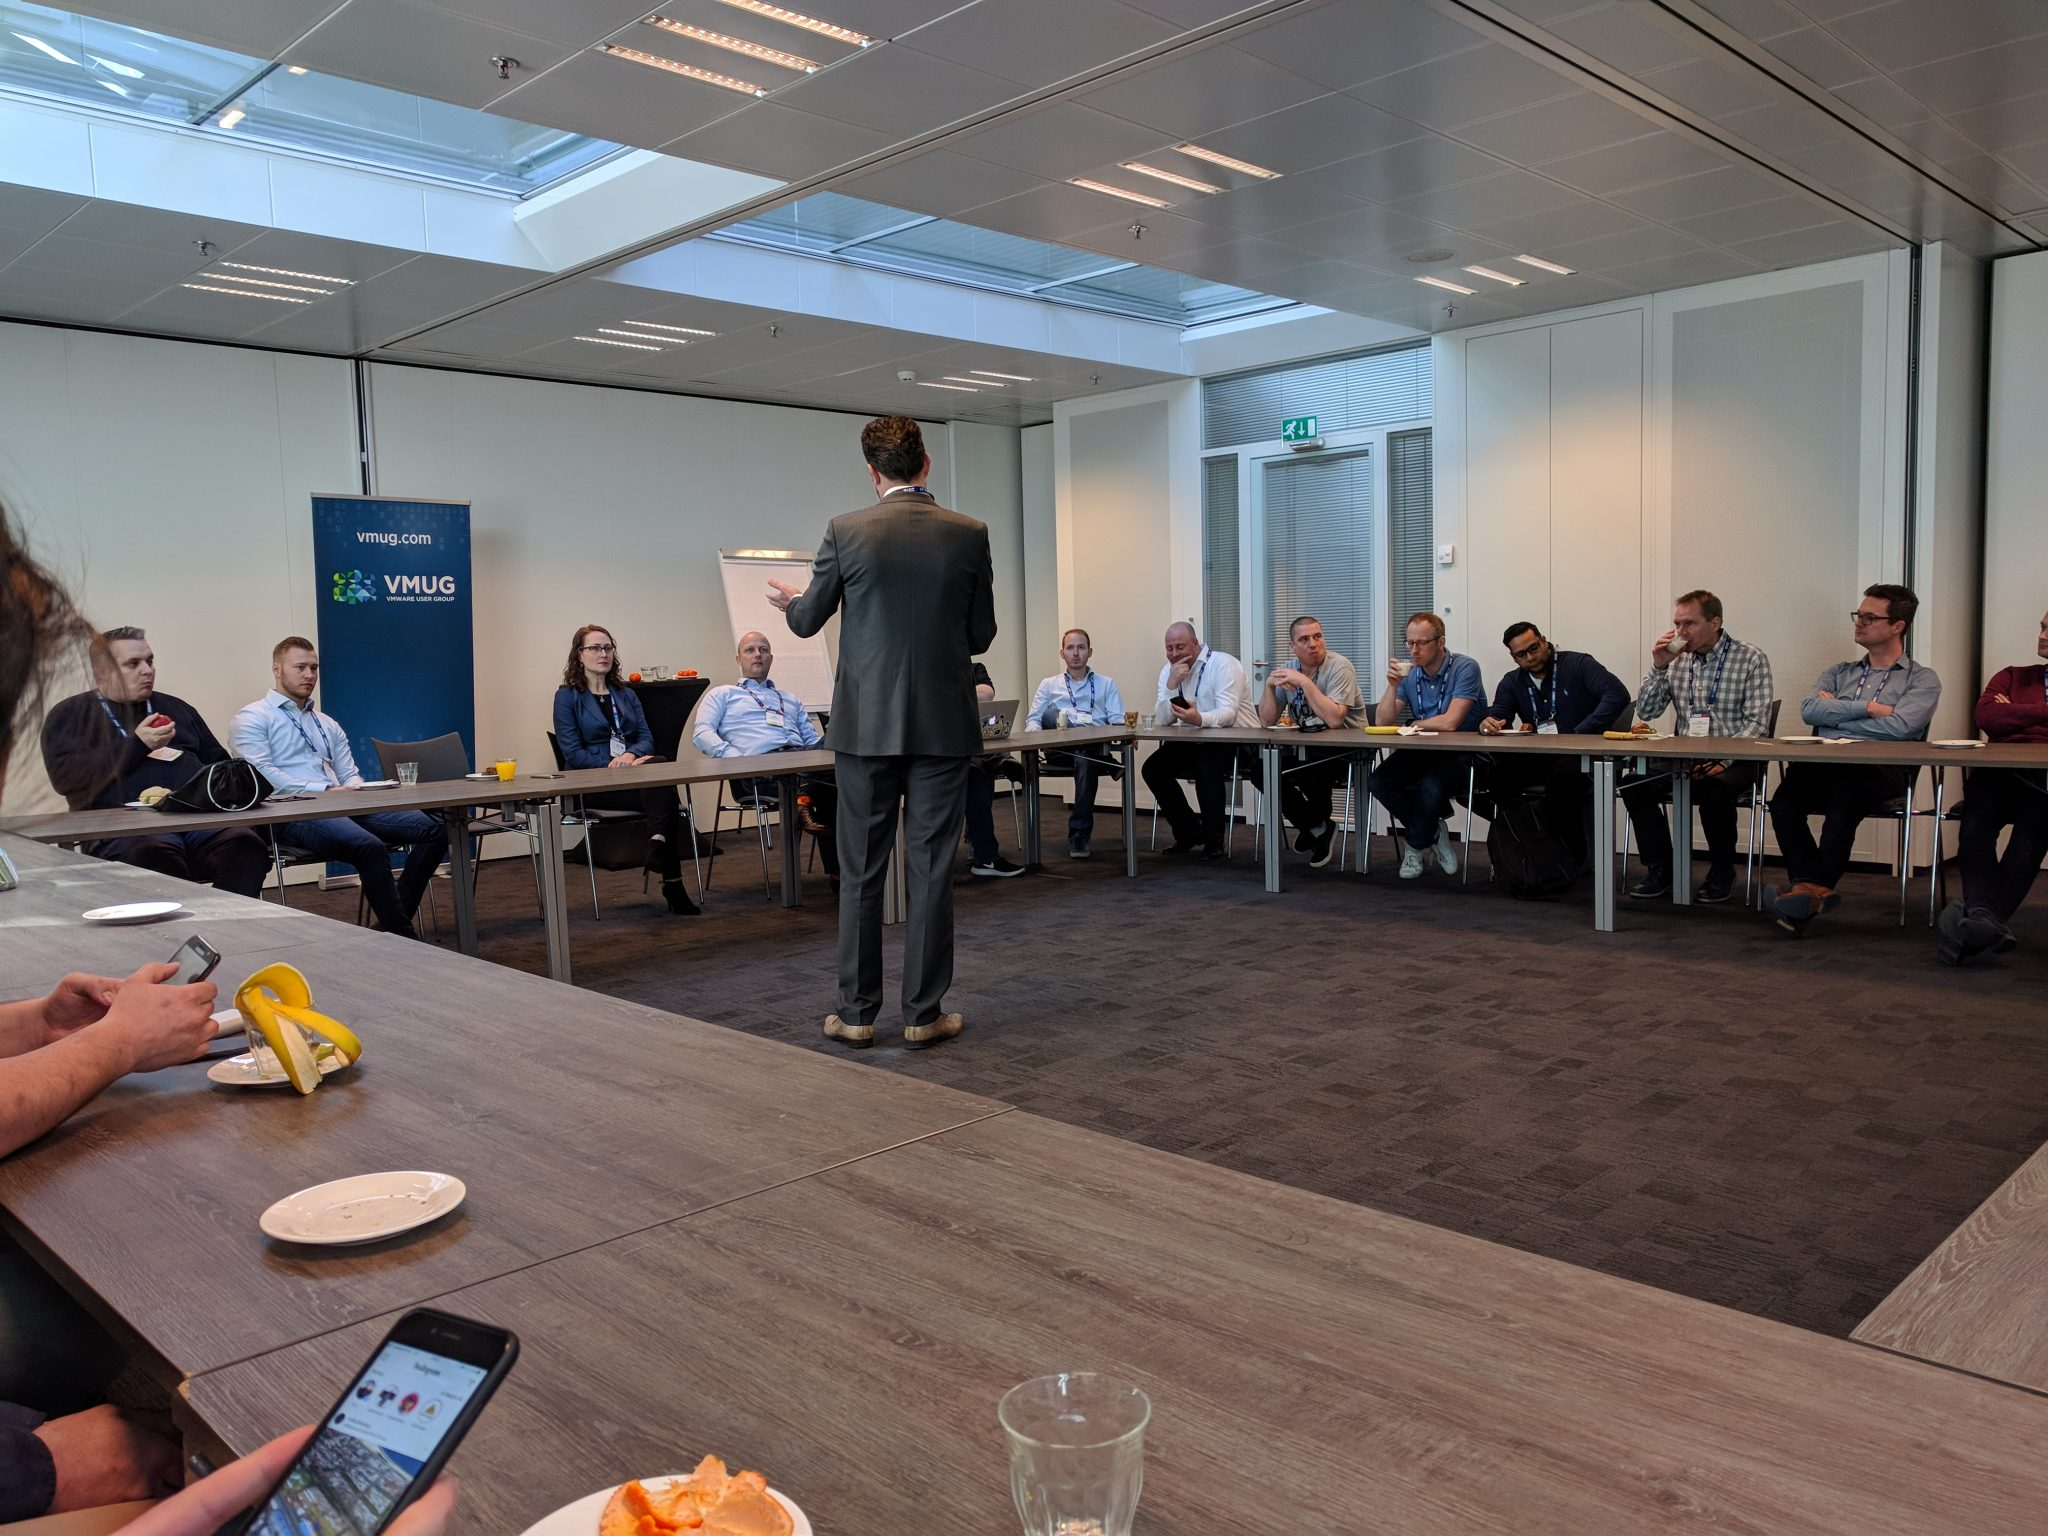 """Dutch VMware vExperts joined together for a meal and a good session about """"How to become more influential"""" by Amy Lewis"""